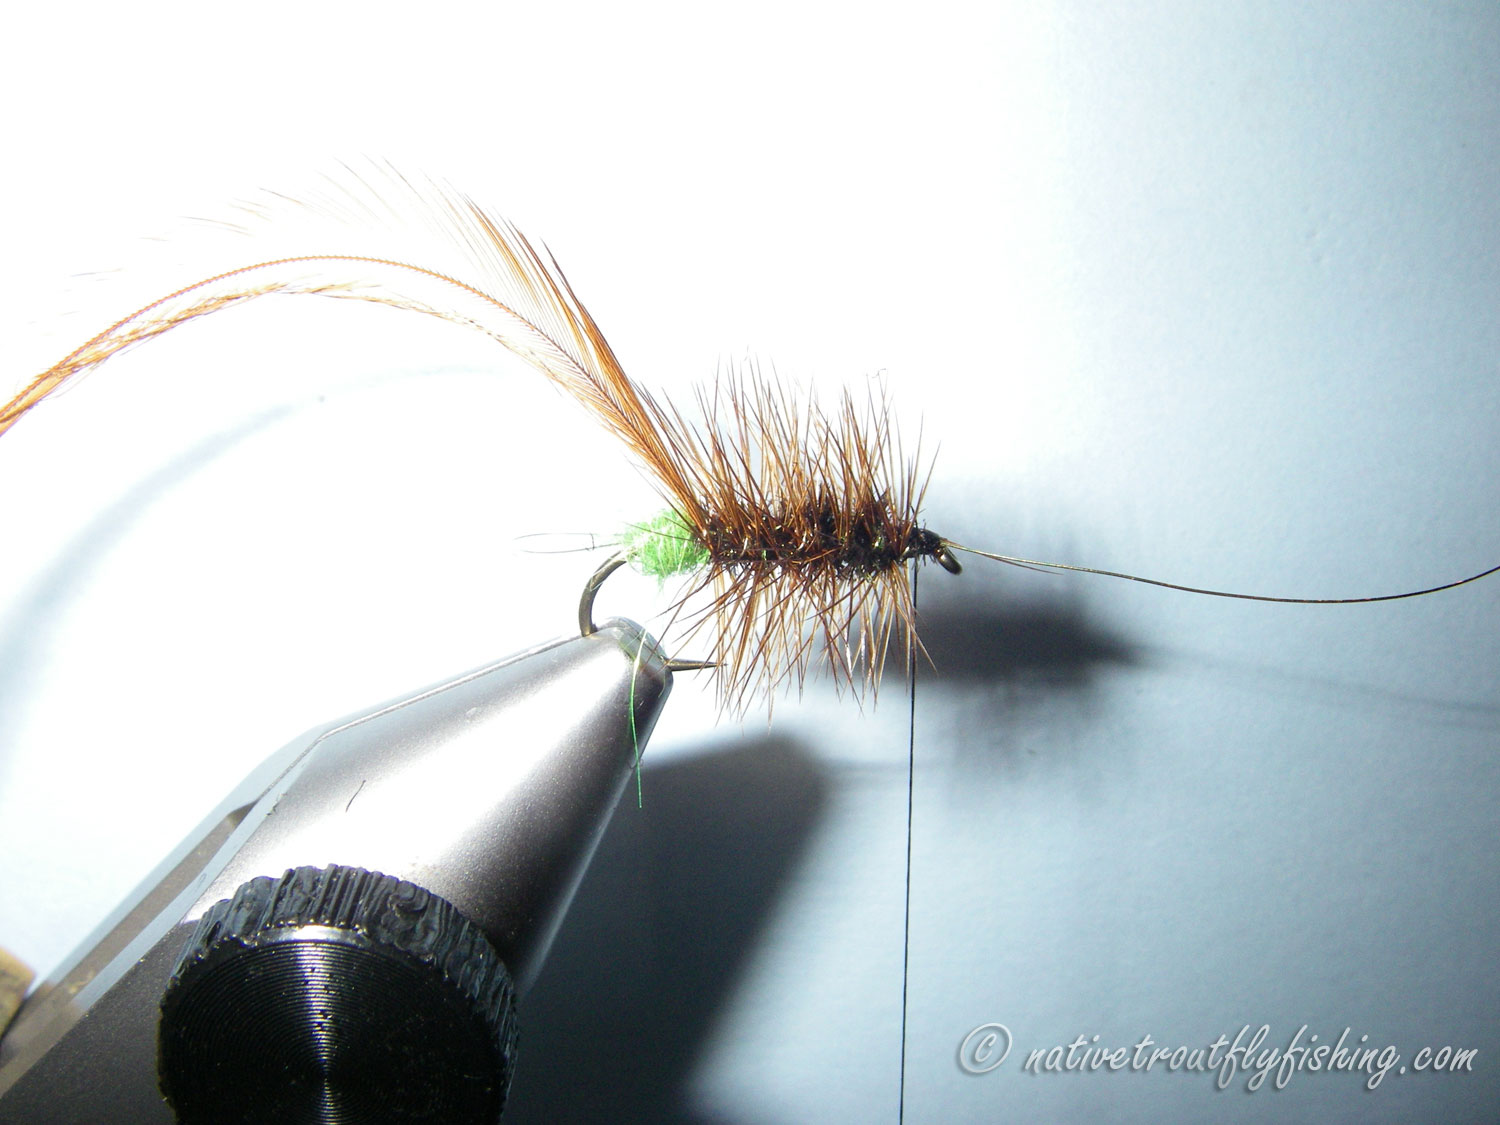 The Hackle To Form The Rib And Tie It Off Behind The Eye This Will